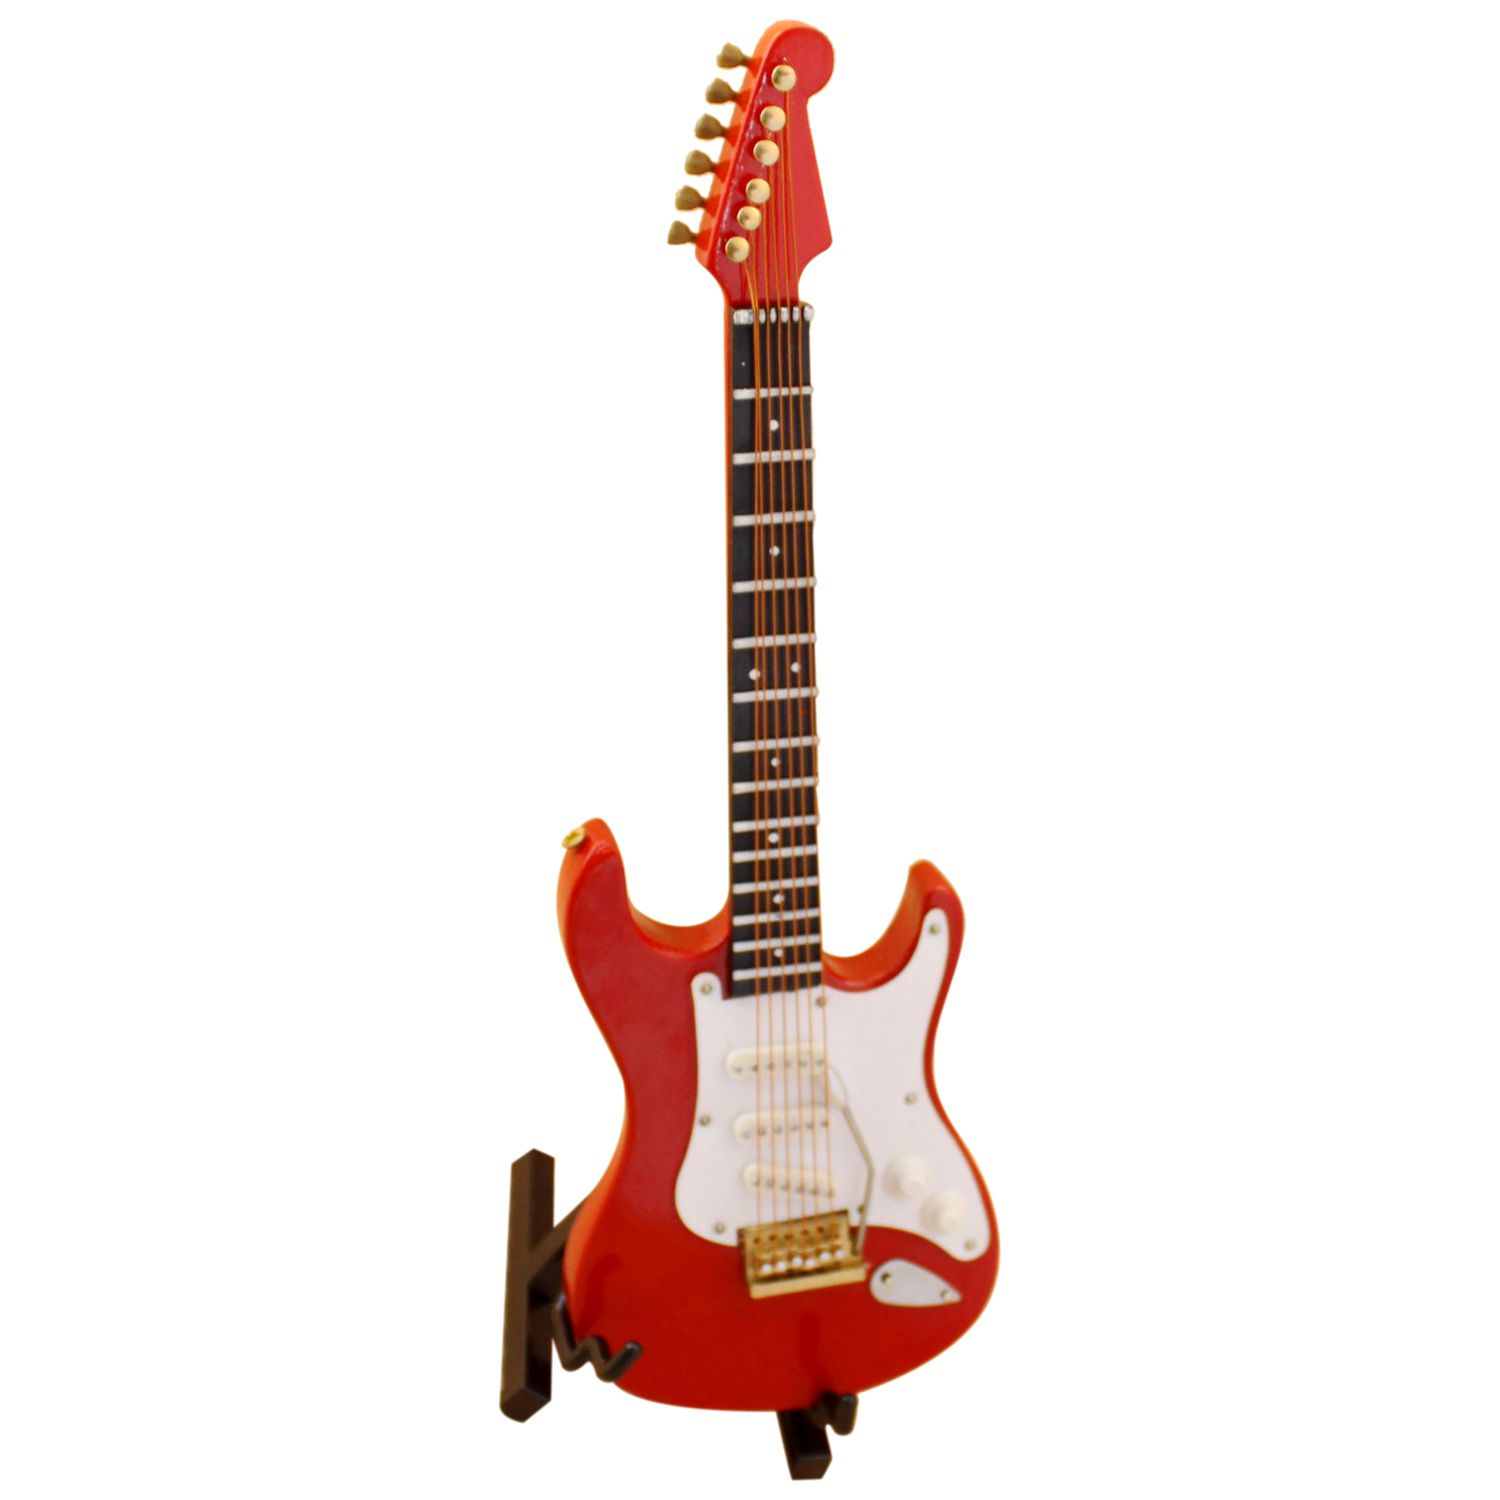 LLY 1:12 Dollhouse Wooden Miniature Music Electric Guitar Red Mini Instrument Toy for Doll House Decor